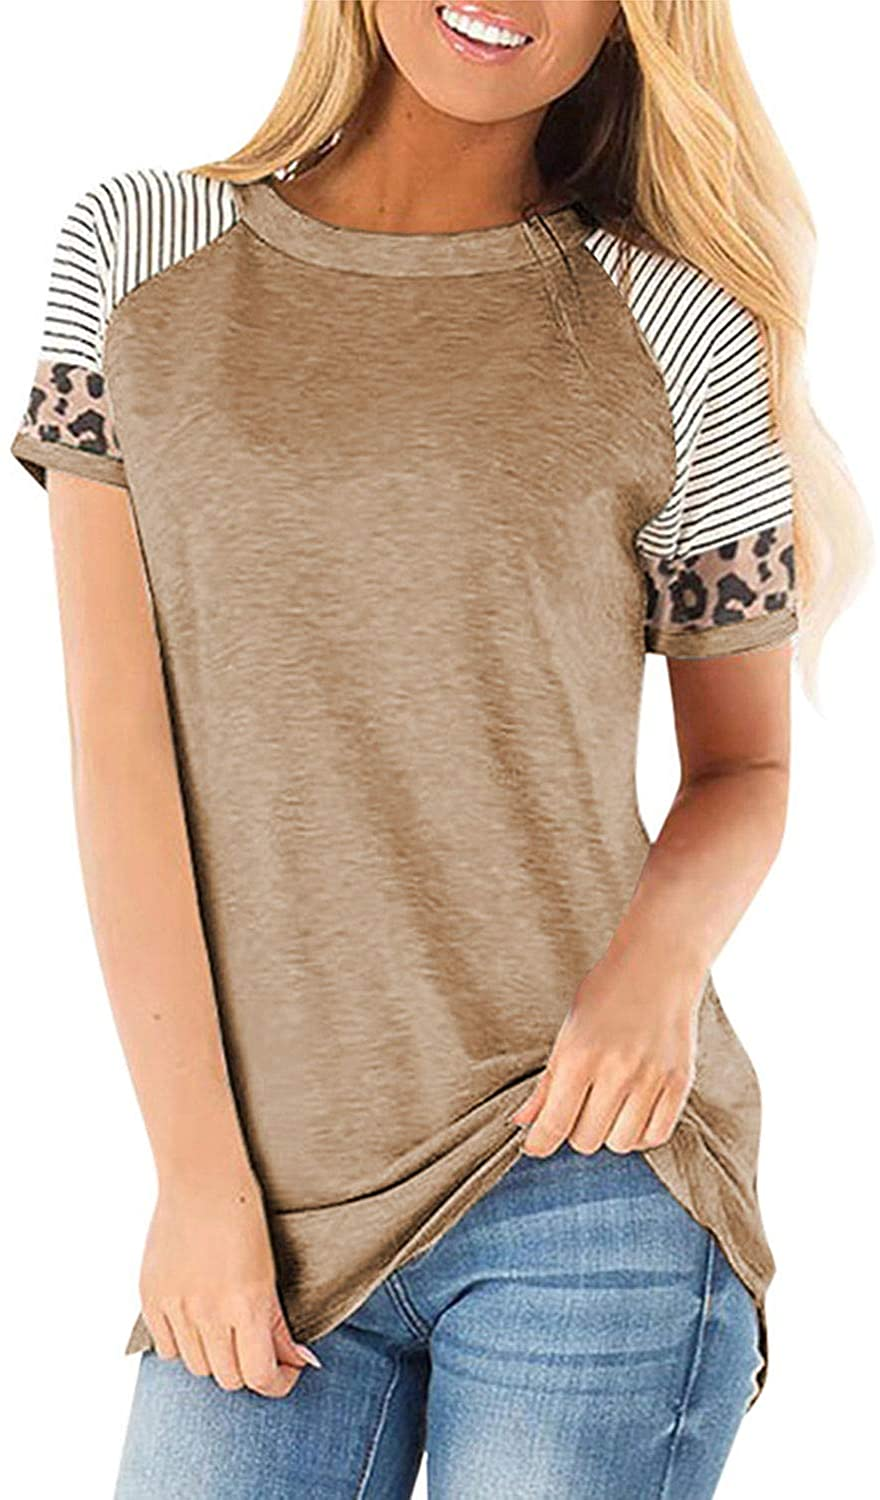 CoolooC Womens Casual T Shirts Leopard Print Patchwork Striped Short Sleeve Tunic Tops Blouses